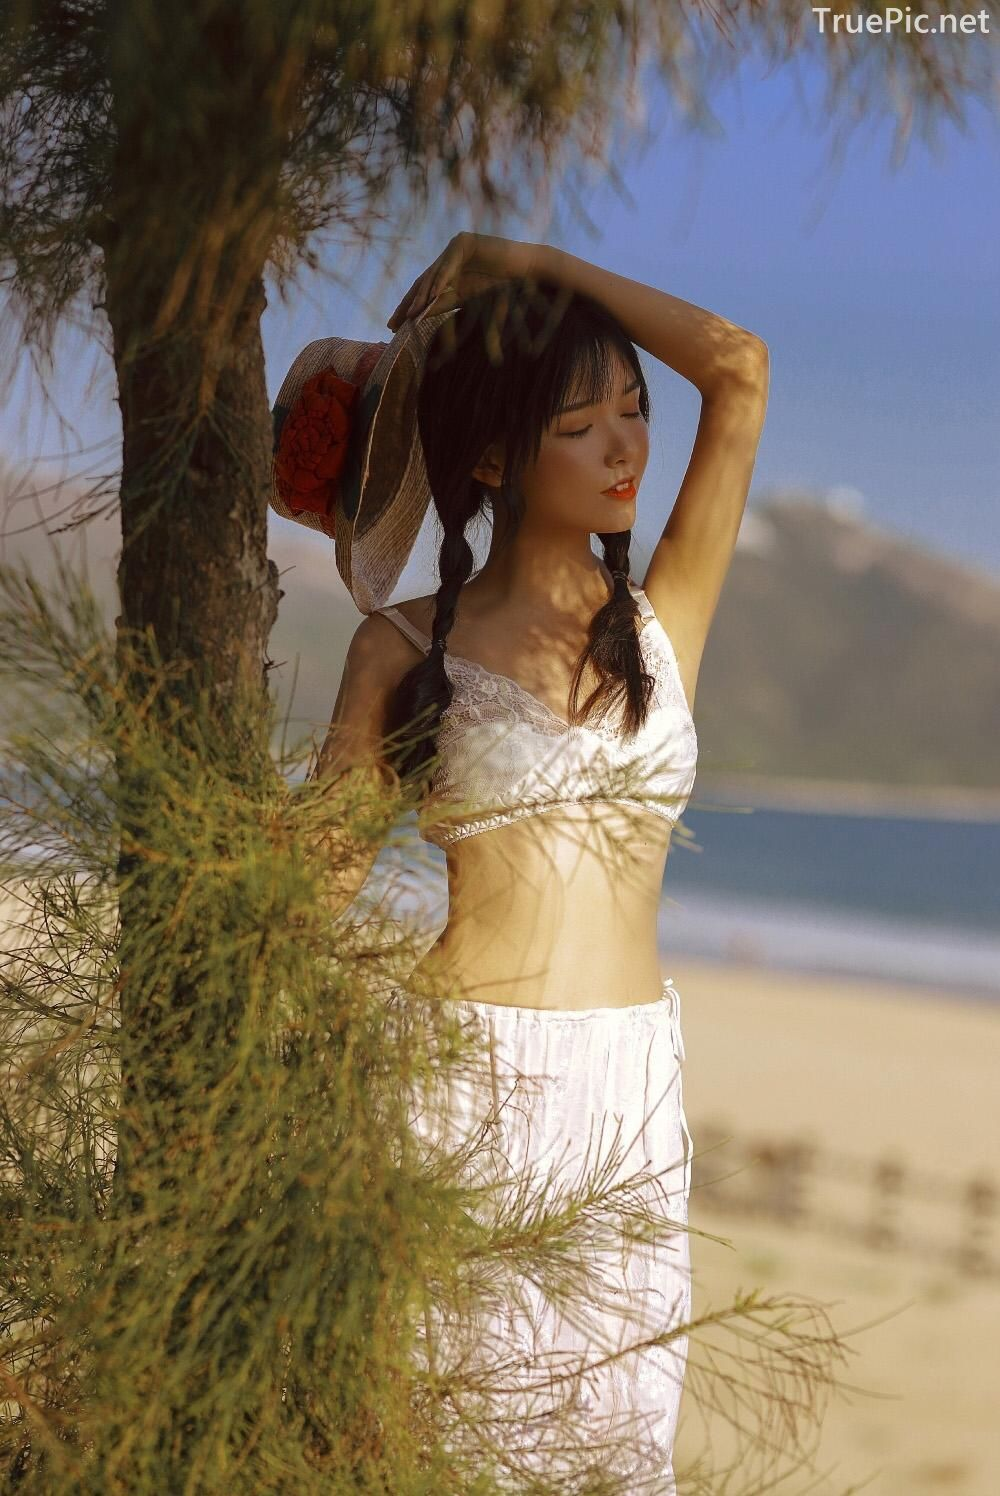 Chinese bautiful angel - Stay with you on a beautiful beach - TruePic.net - Picture 4